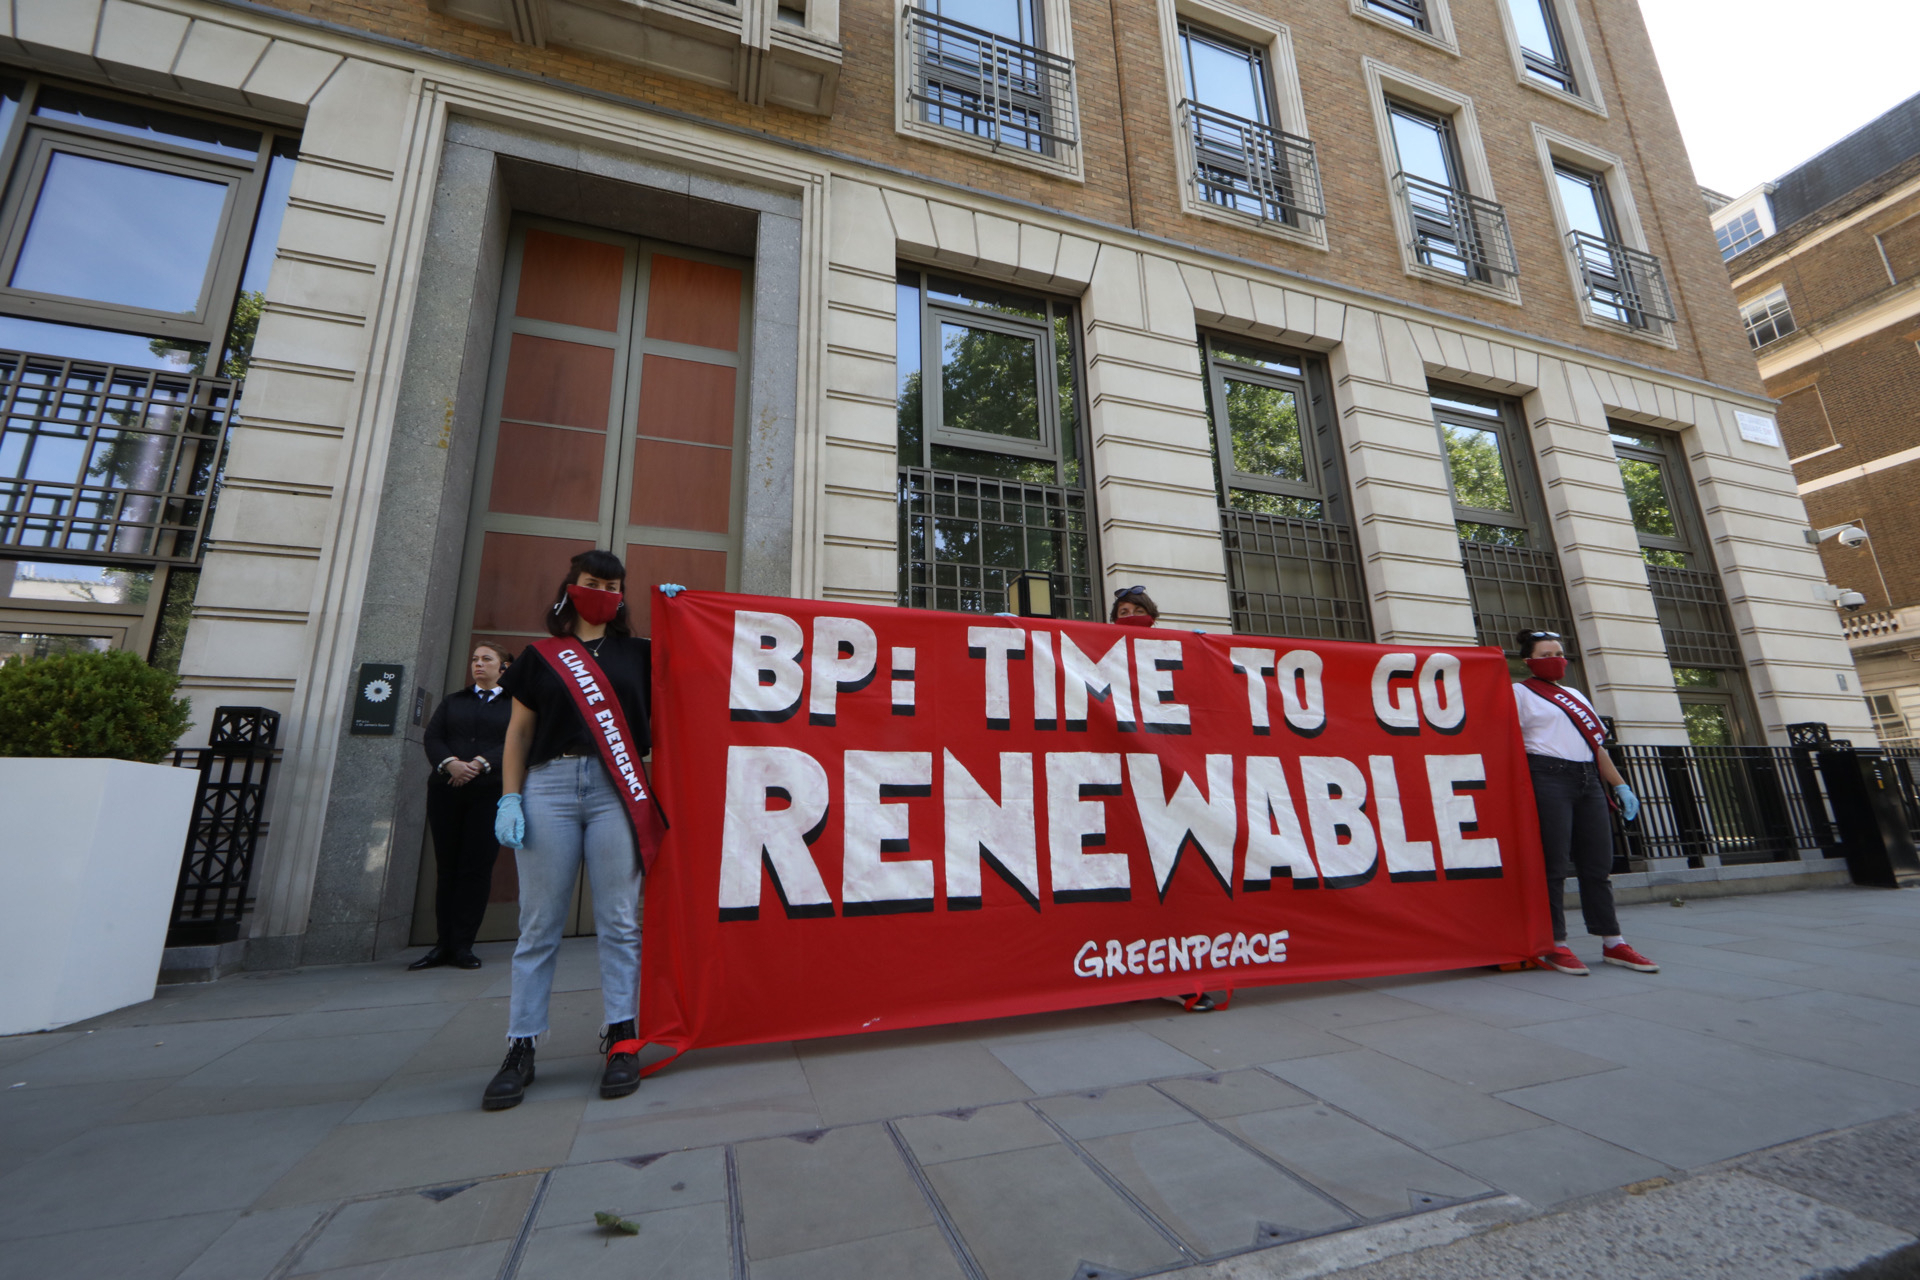 Greenpeace stage 'socially distanced protest' at BP AGM - News for the Oil and Gas Sector